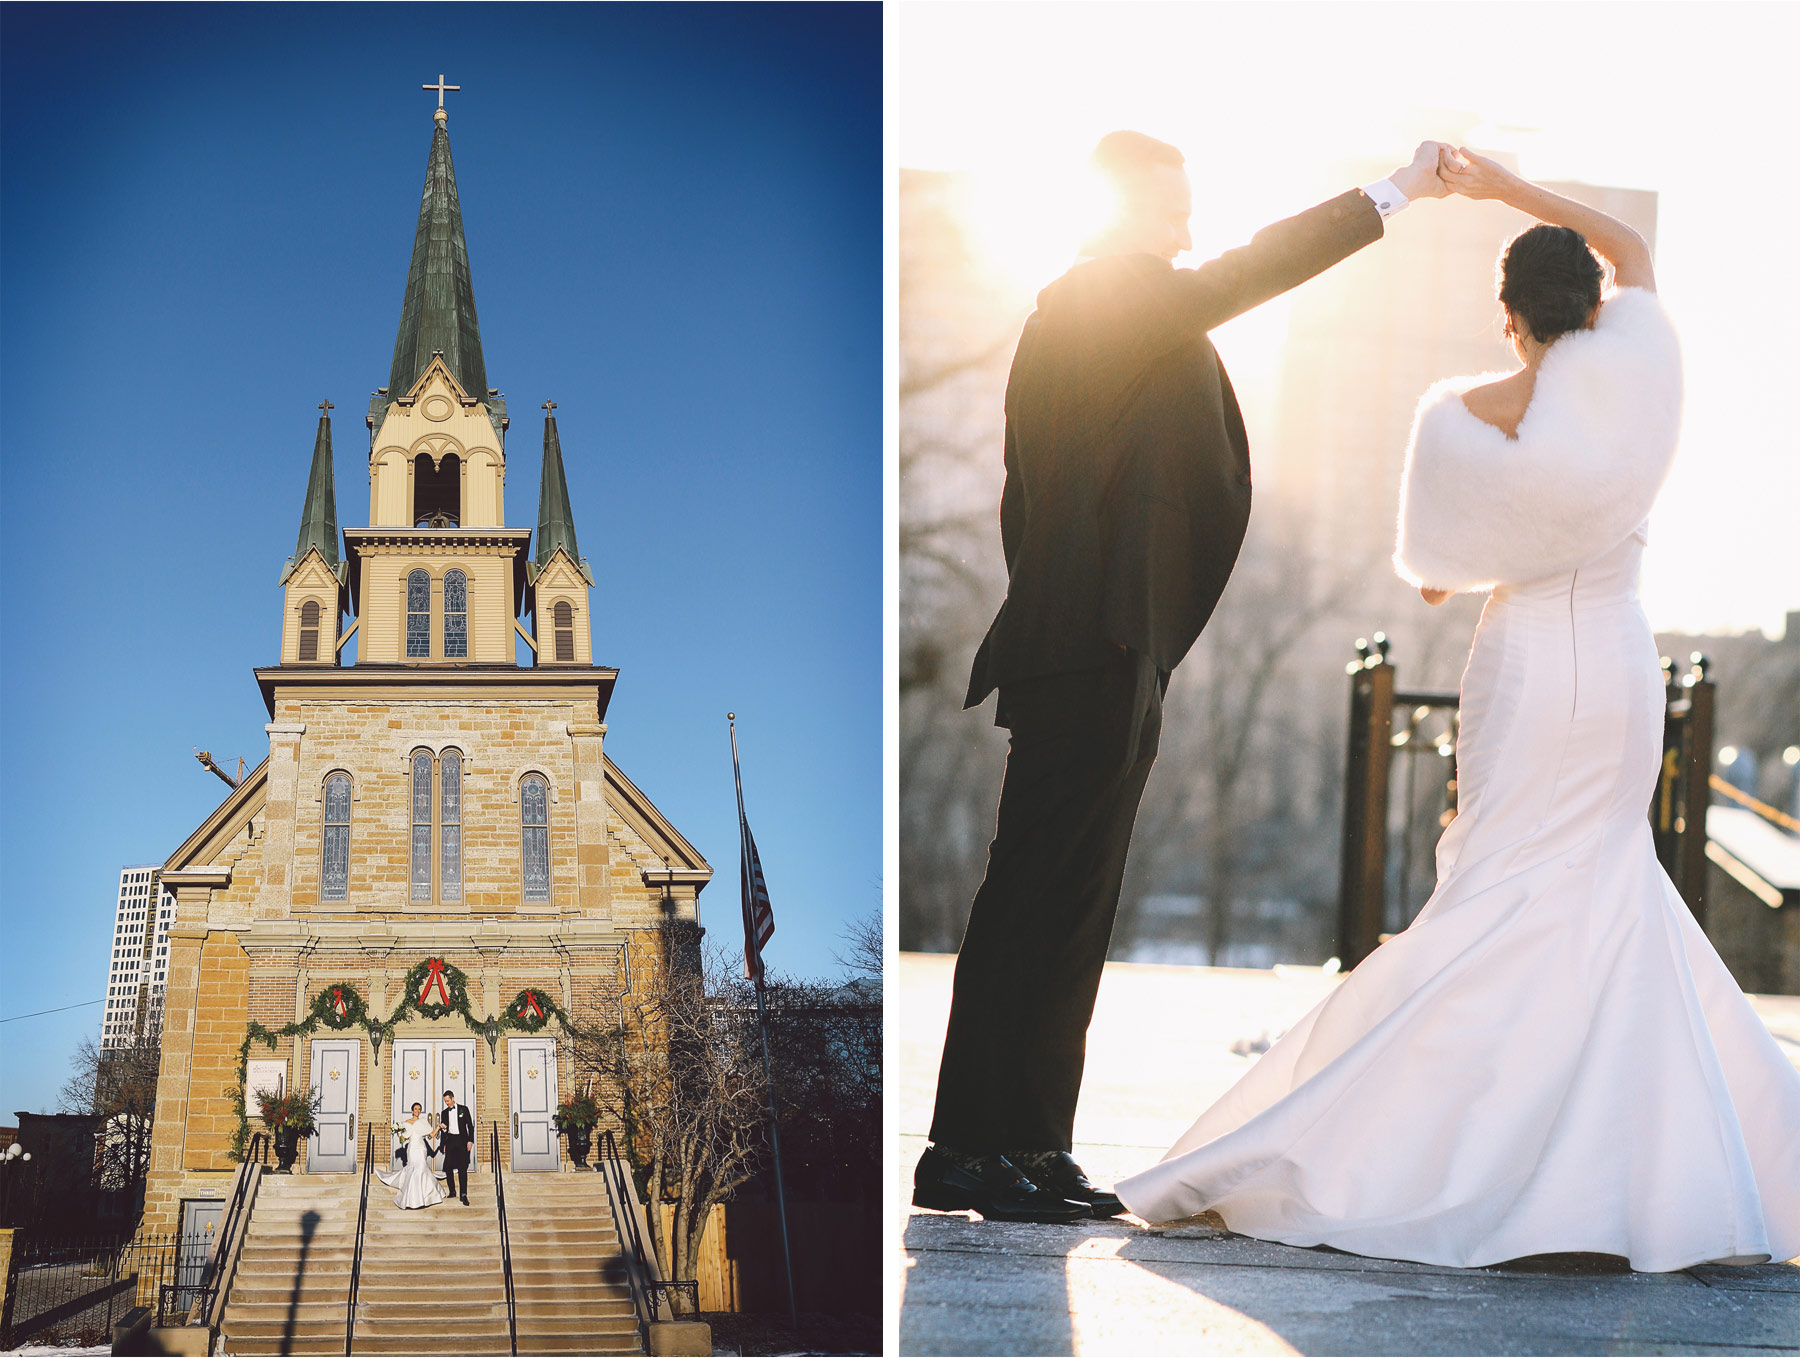 10-Minneapolis-Minnesota-Wedding-Photographer-Andrew-Vick-Photography-Winter-Bride-and-Groom-Our-Lady-of-Lourdes-Allison-and-Steve.jpg